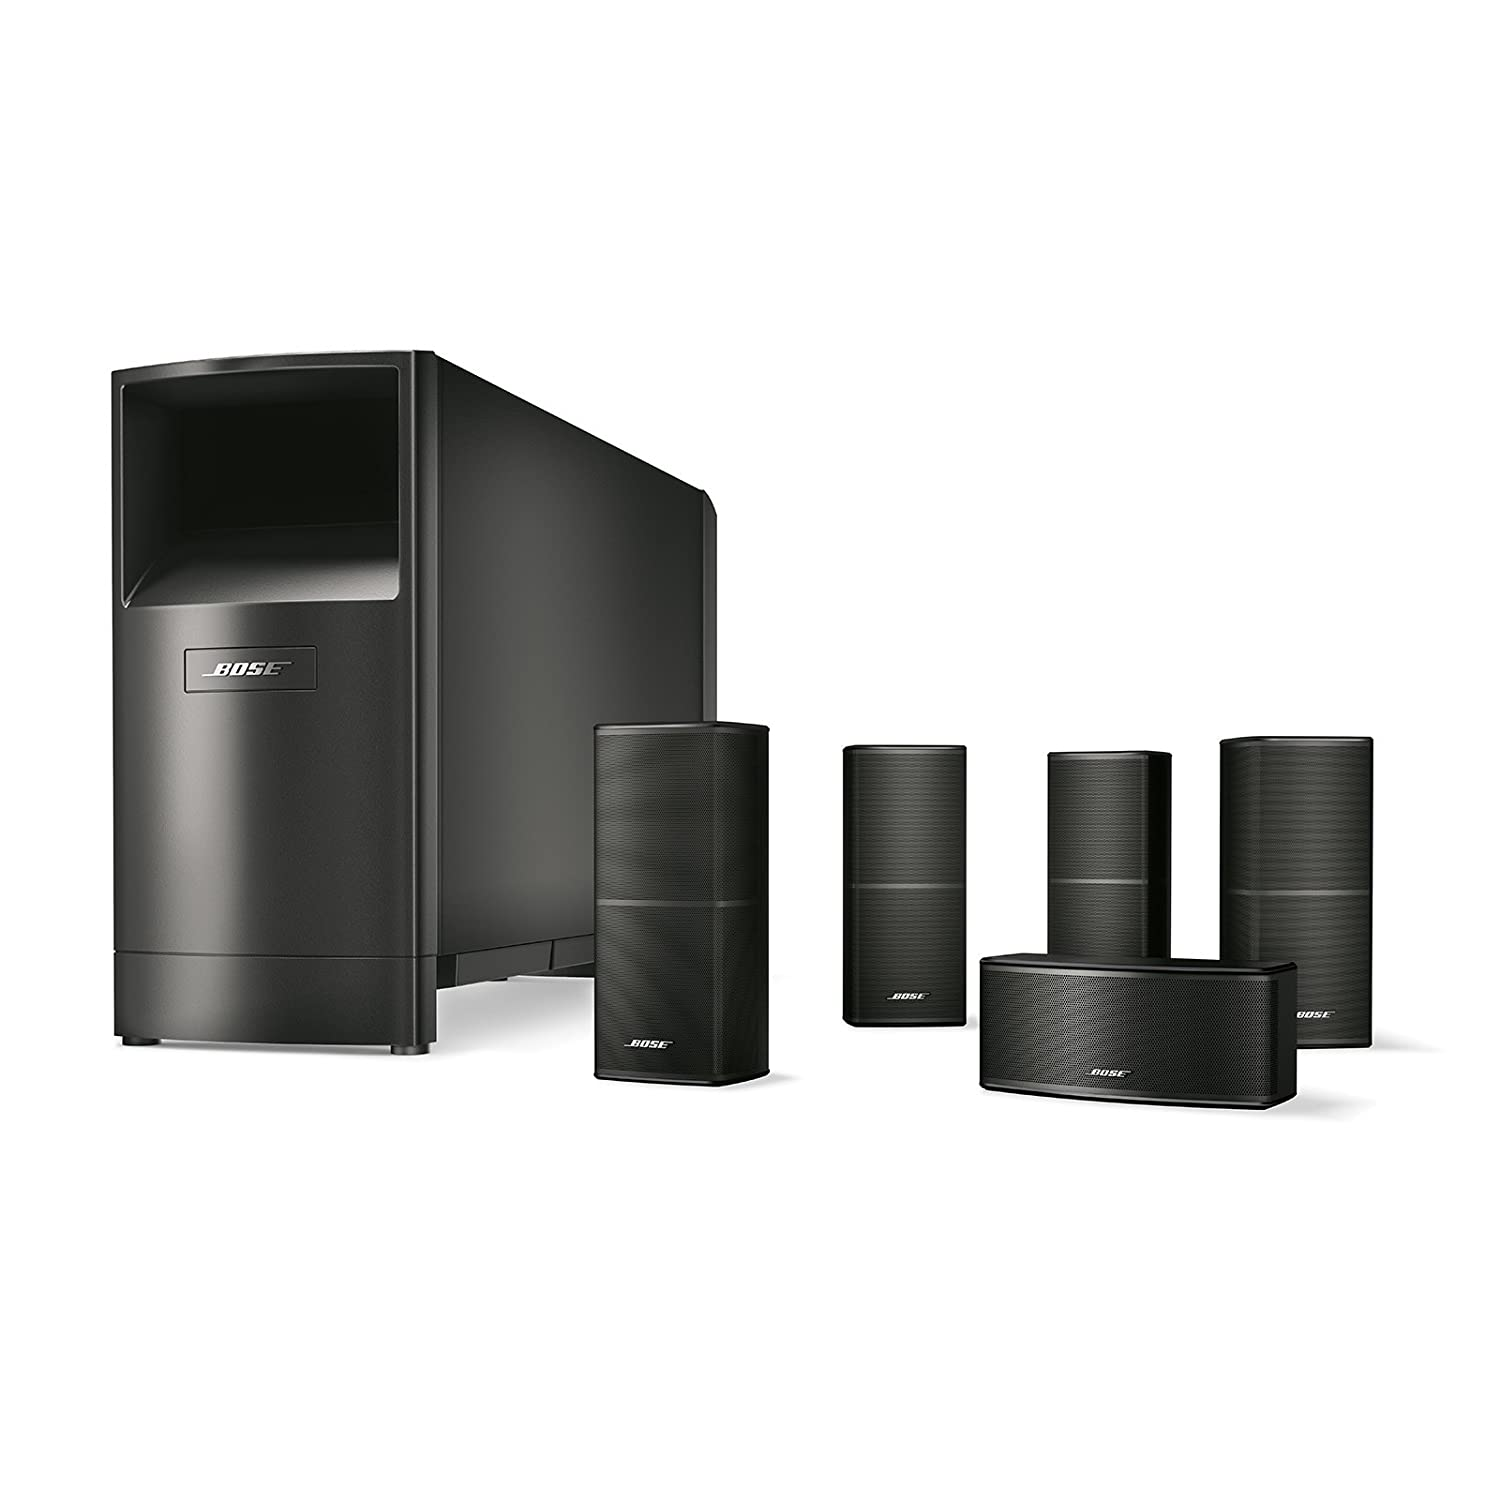 Bose Sound System >> Bose Acoustimass 10 Series V Home Theater Speaker System Black 720962 1100